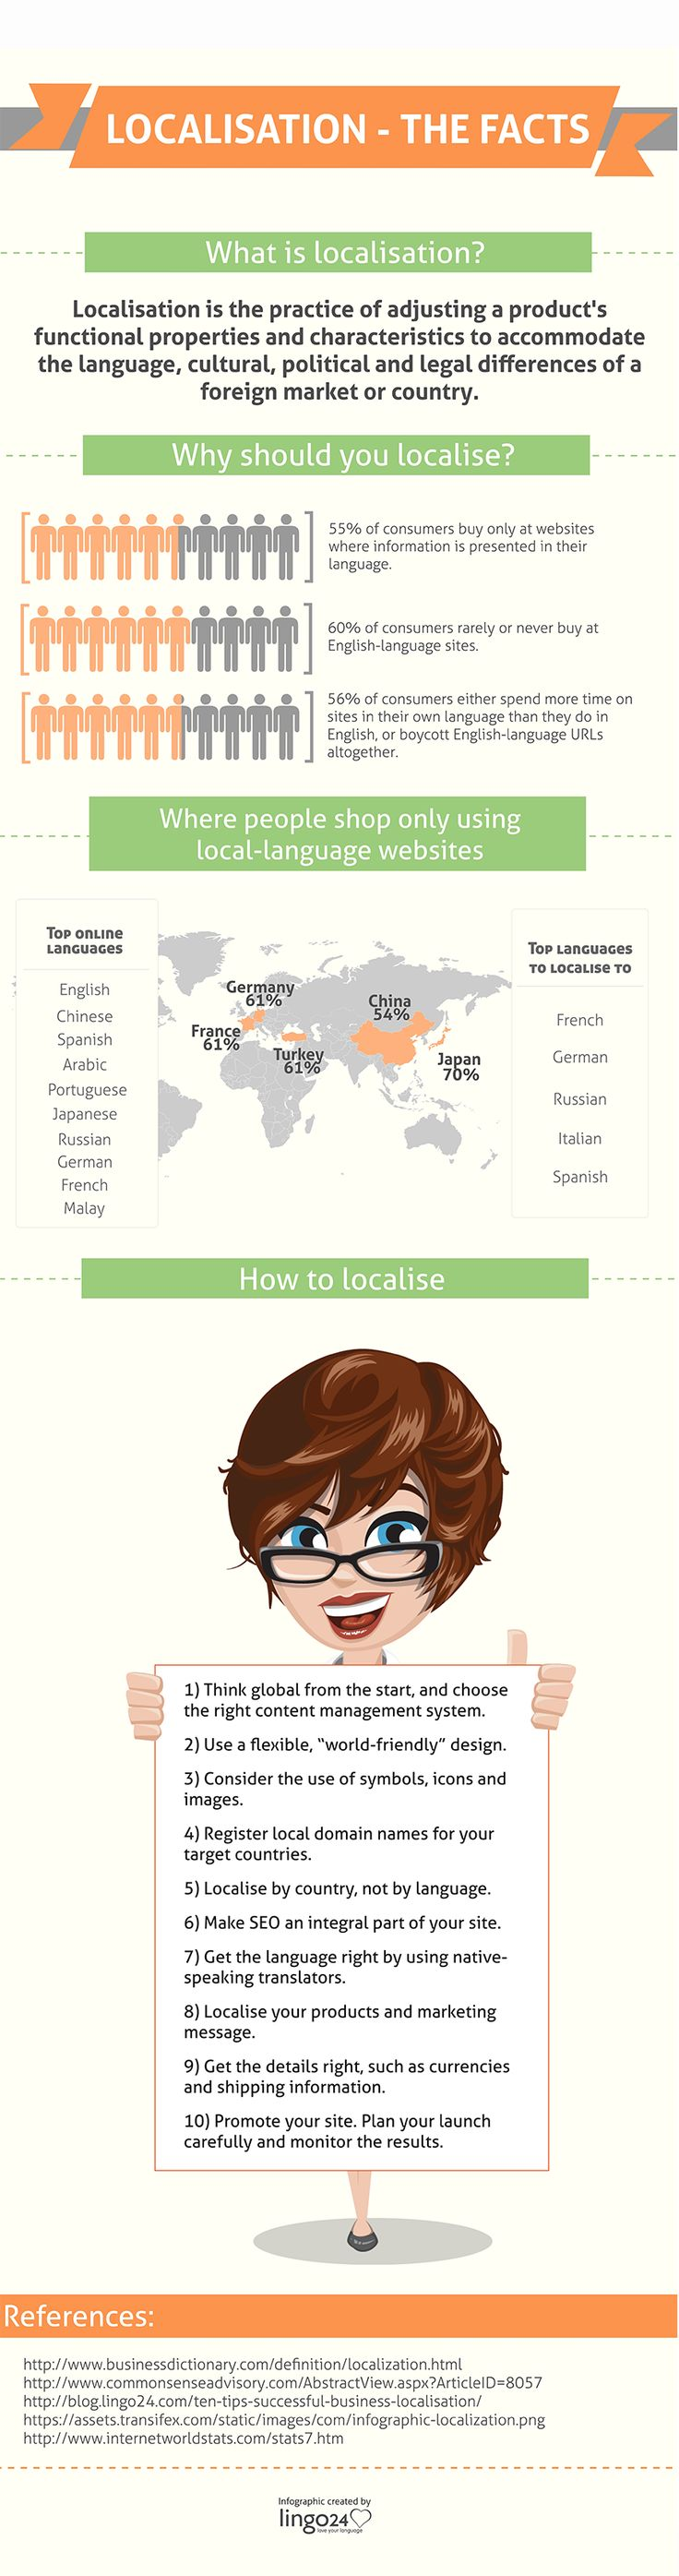 "The term ""localisation"" has been used frequently in our industry for many years now. But it's time for it to shake off the stigma of it just being another marketing buzzword, and grow up to be a fully-fledged business word, able to prove its worth in boardroom conversations. Our new #infographic shows why..."